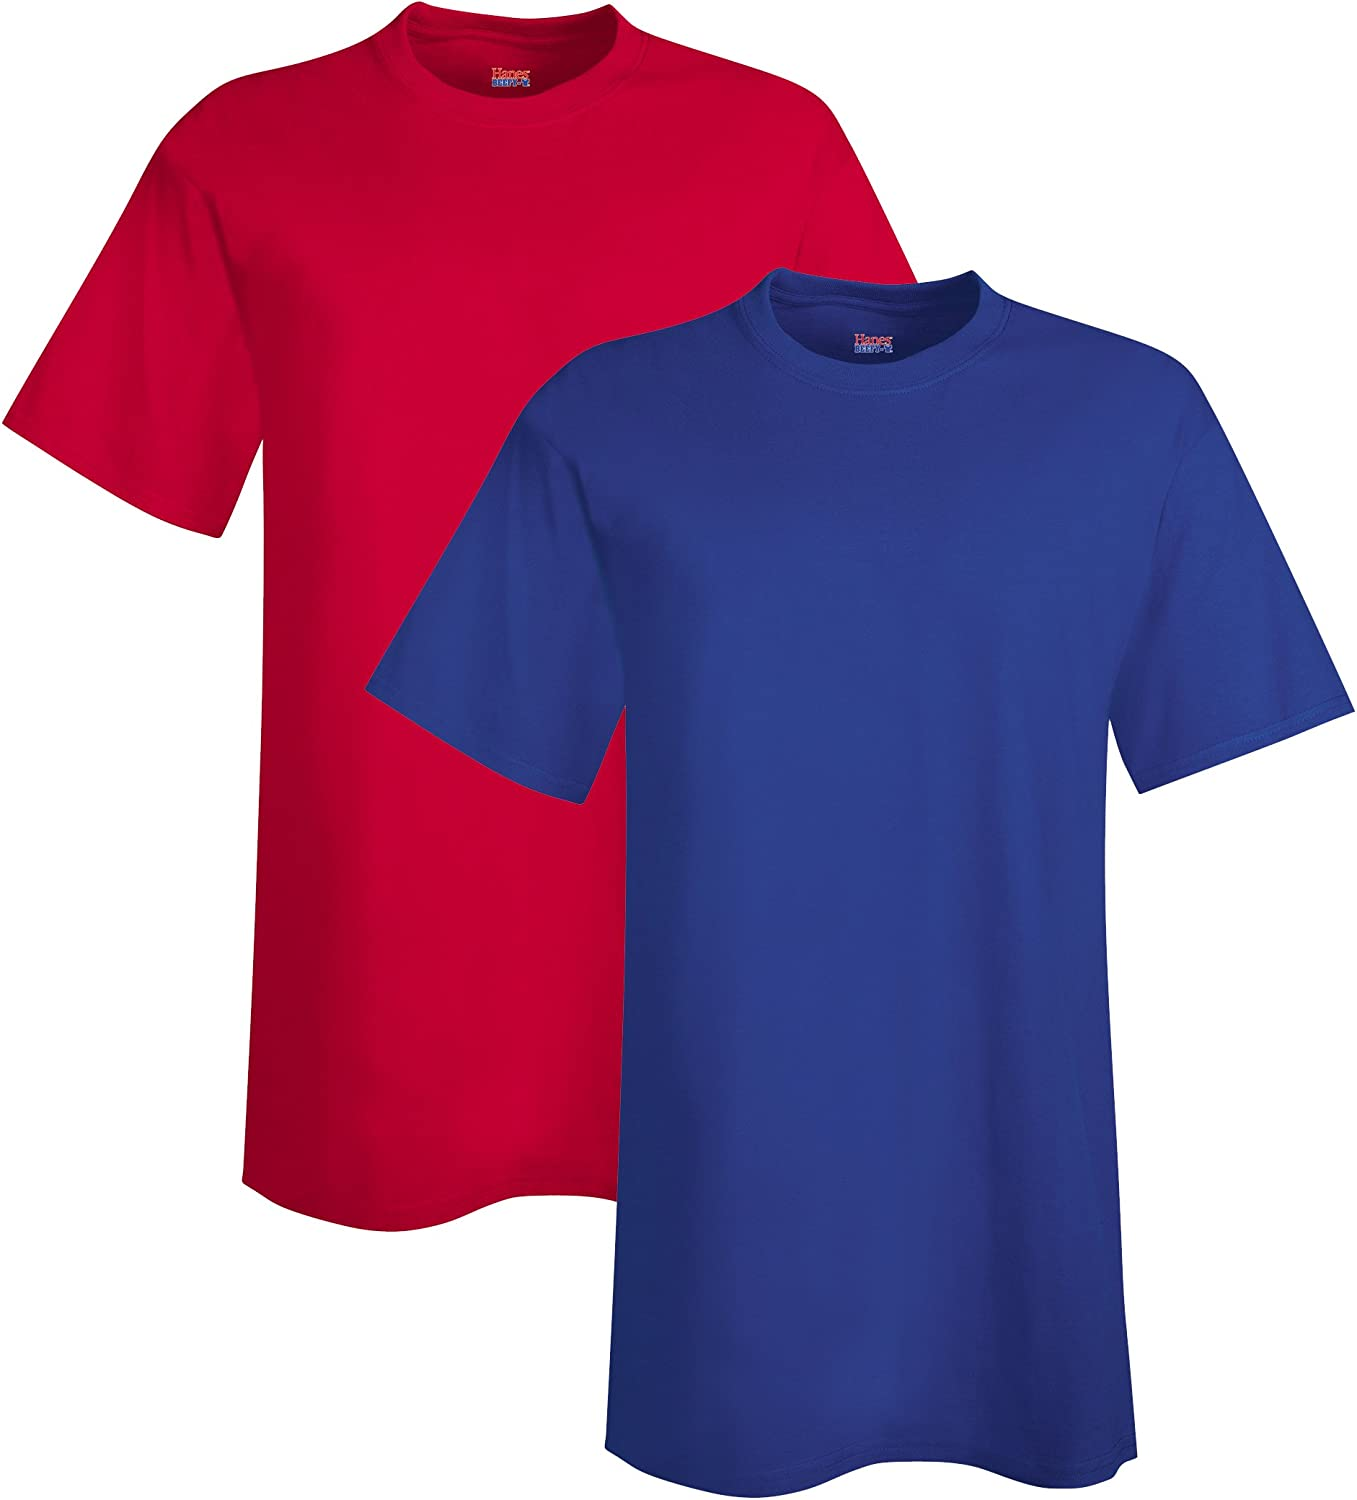 Hanes Men's Tall Beefy-T (Pack of 2), 3XLT, 1 Deep Red / 1 Deep Royal